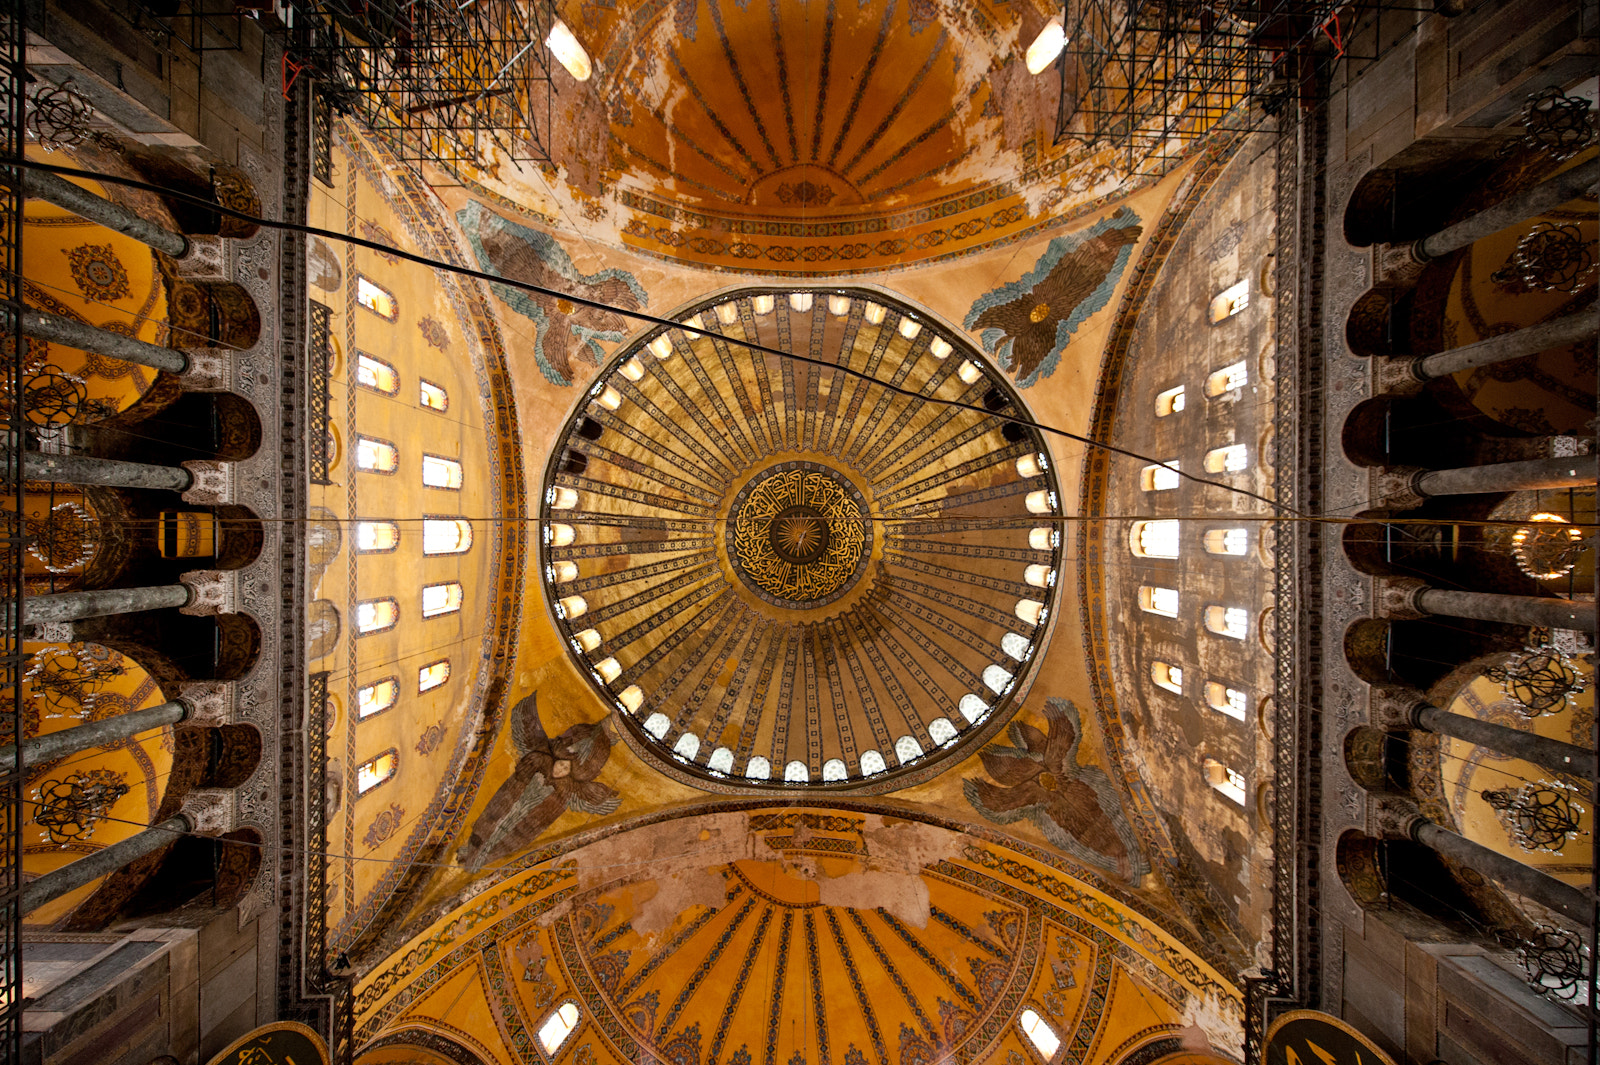 Photograph Ceiling at the Hagia Sofia by Daniel Mora on 500px